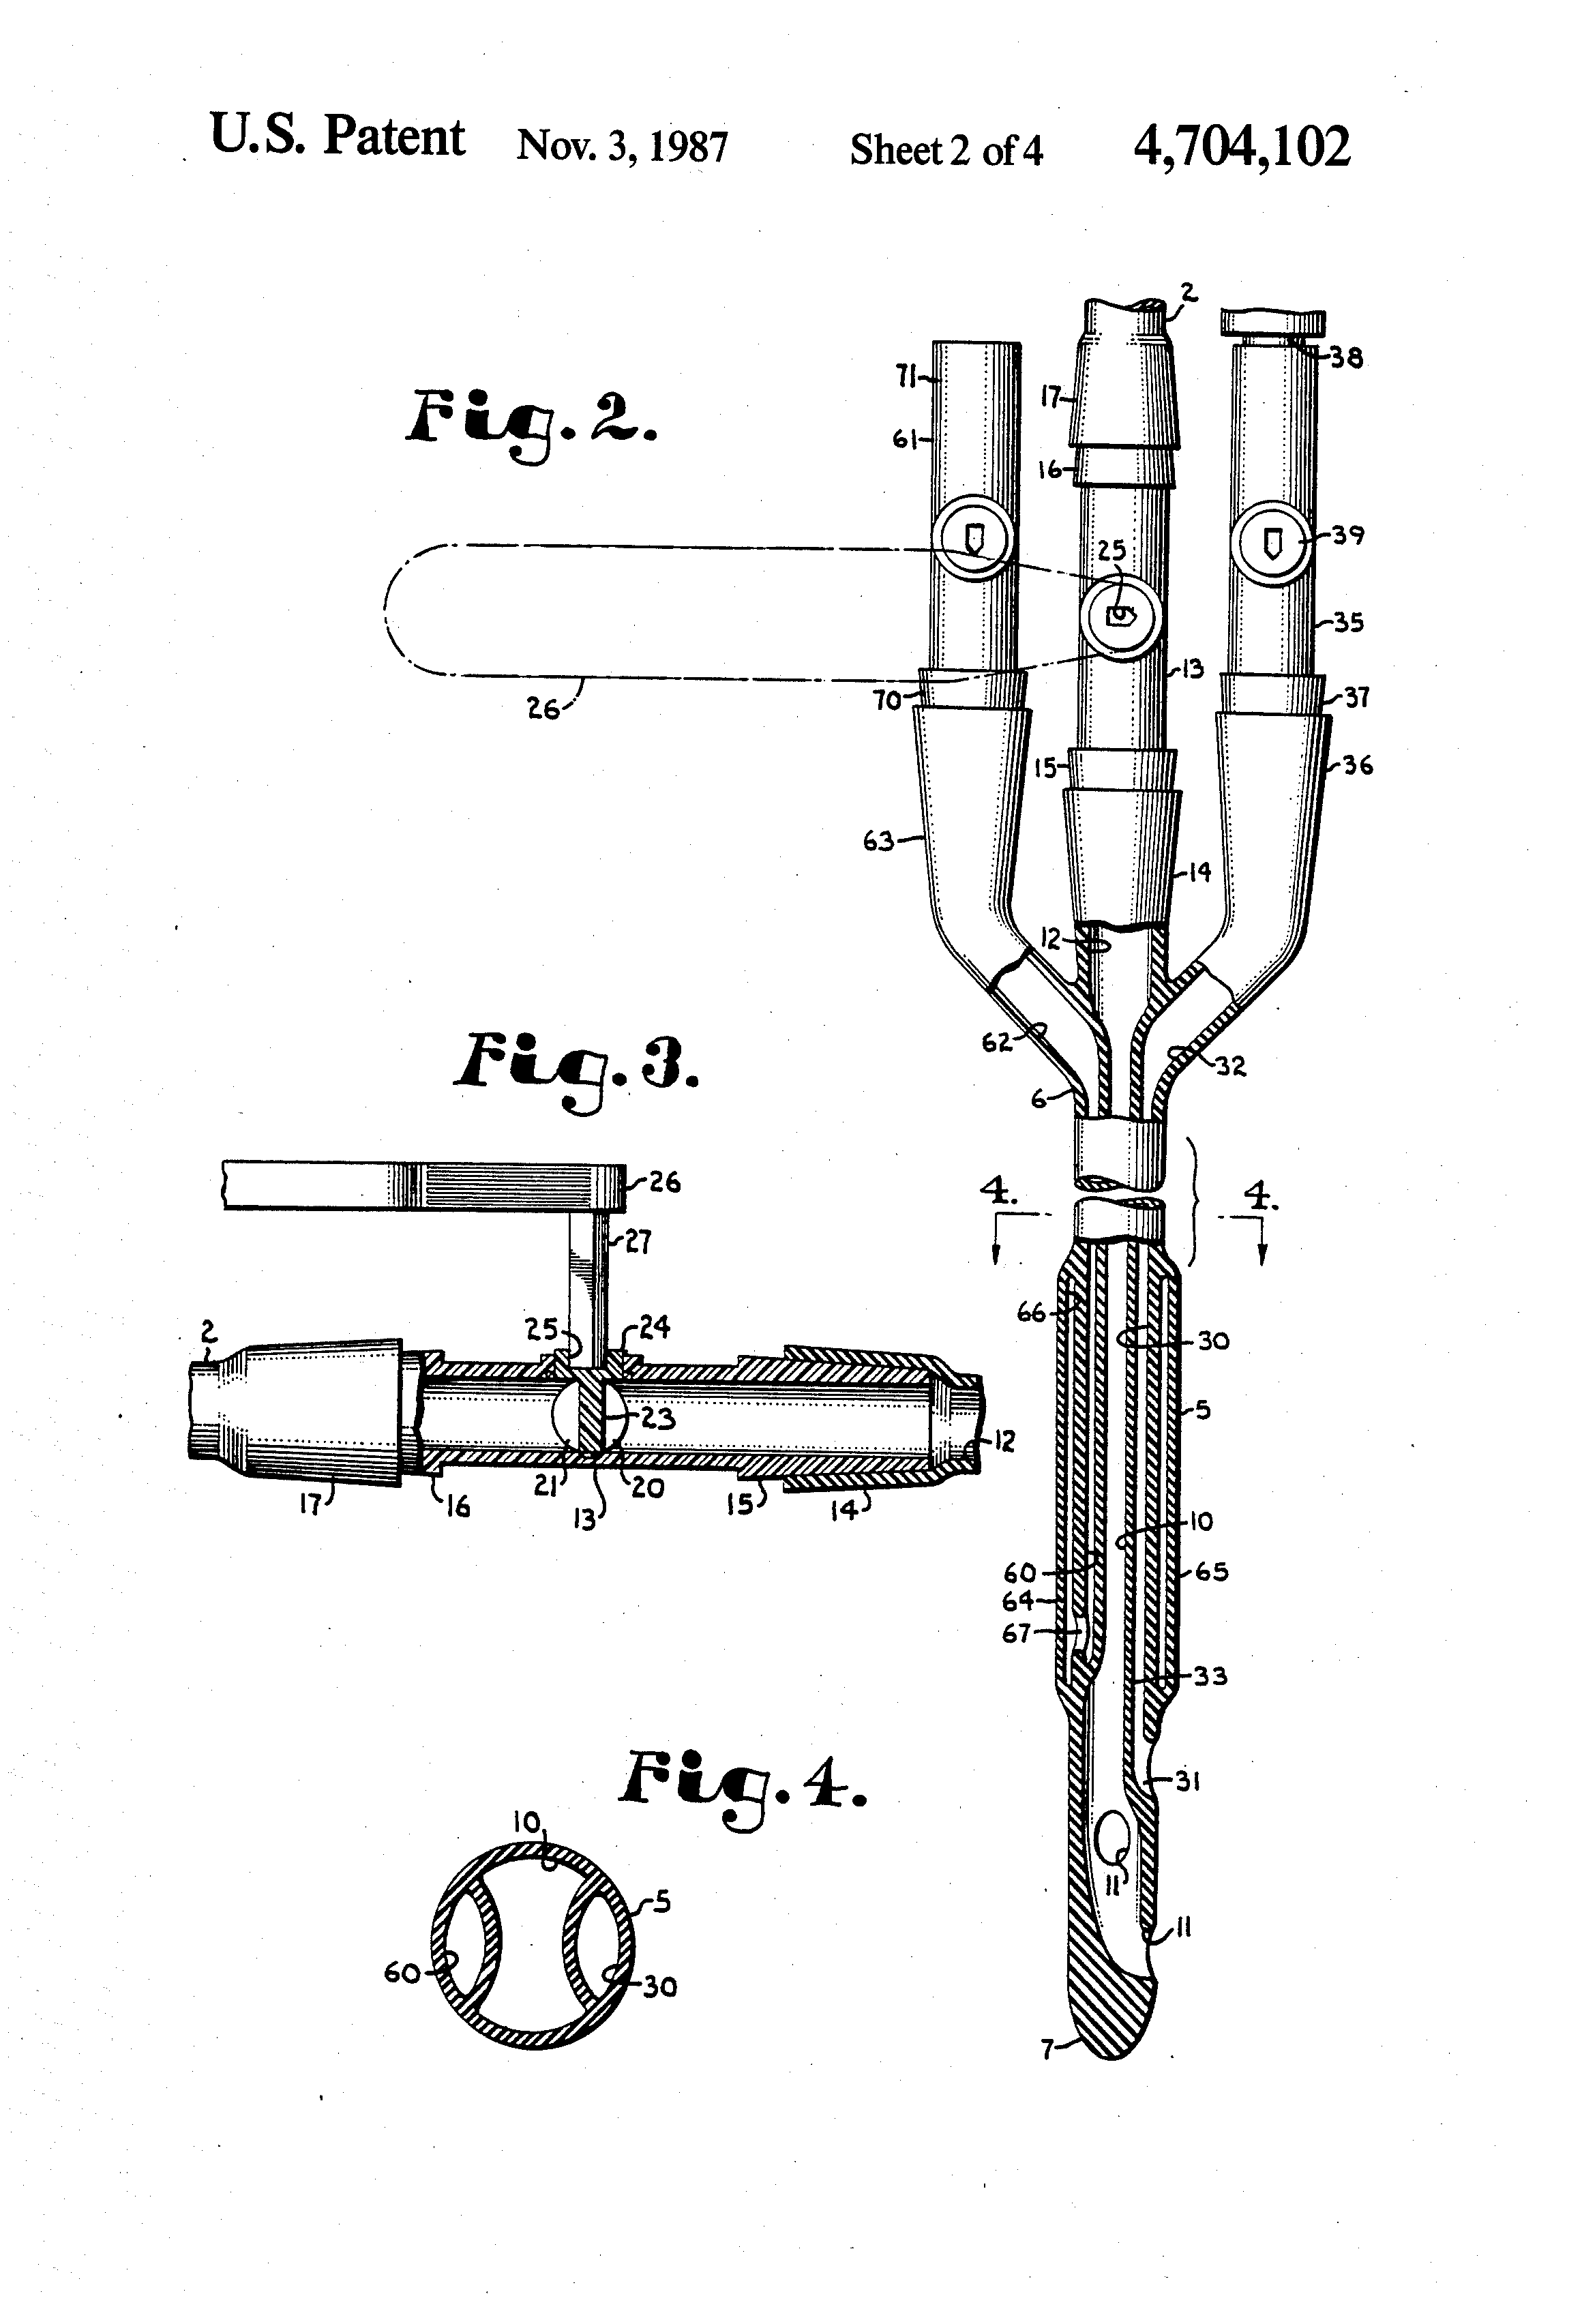 bladder irrigation set